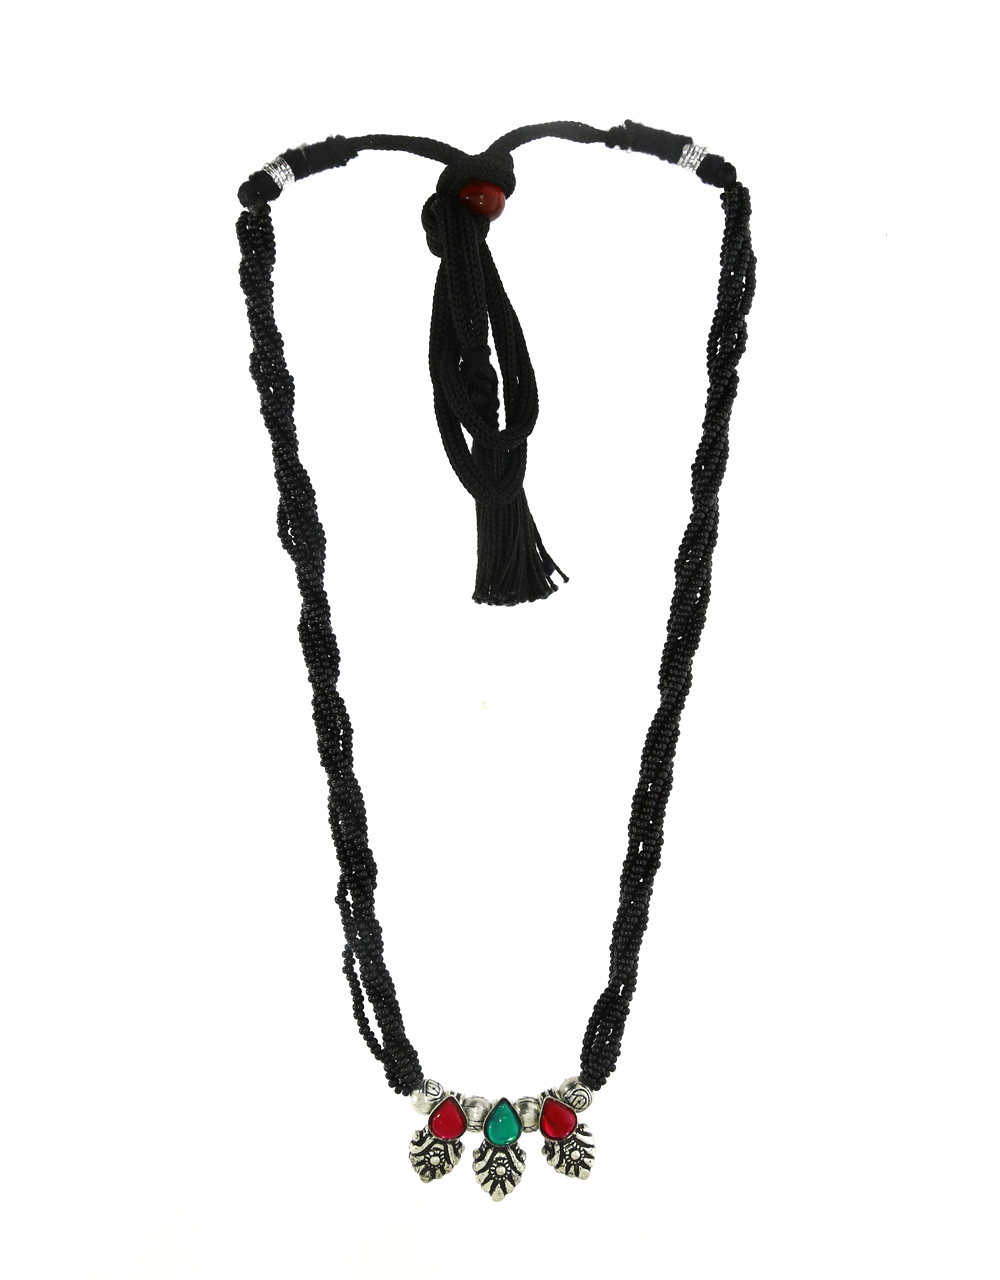 Red-Green Colour Traditional Mangalsutra Set|Oxidized Necklace|Tribal Mangalsutra For Women